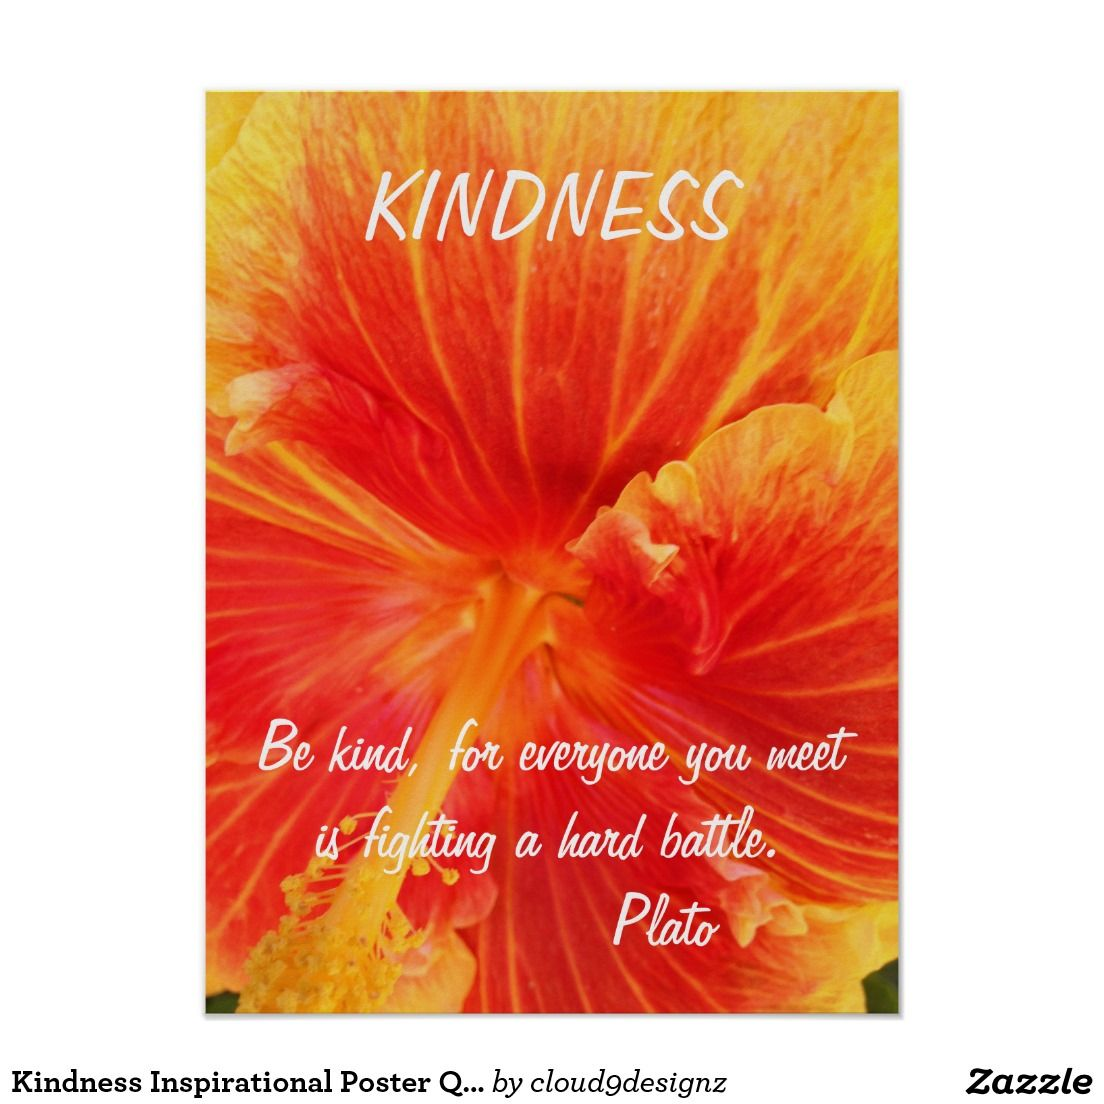 Zazzle poster design - Kindness Inspirational Poster Quote Plato Hibiscus Http Www Zazzle Com